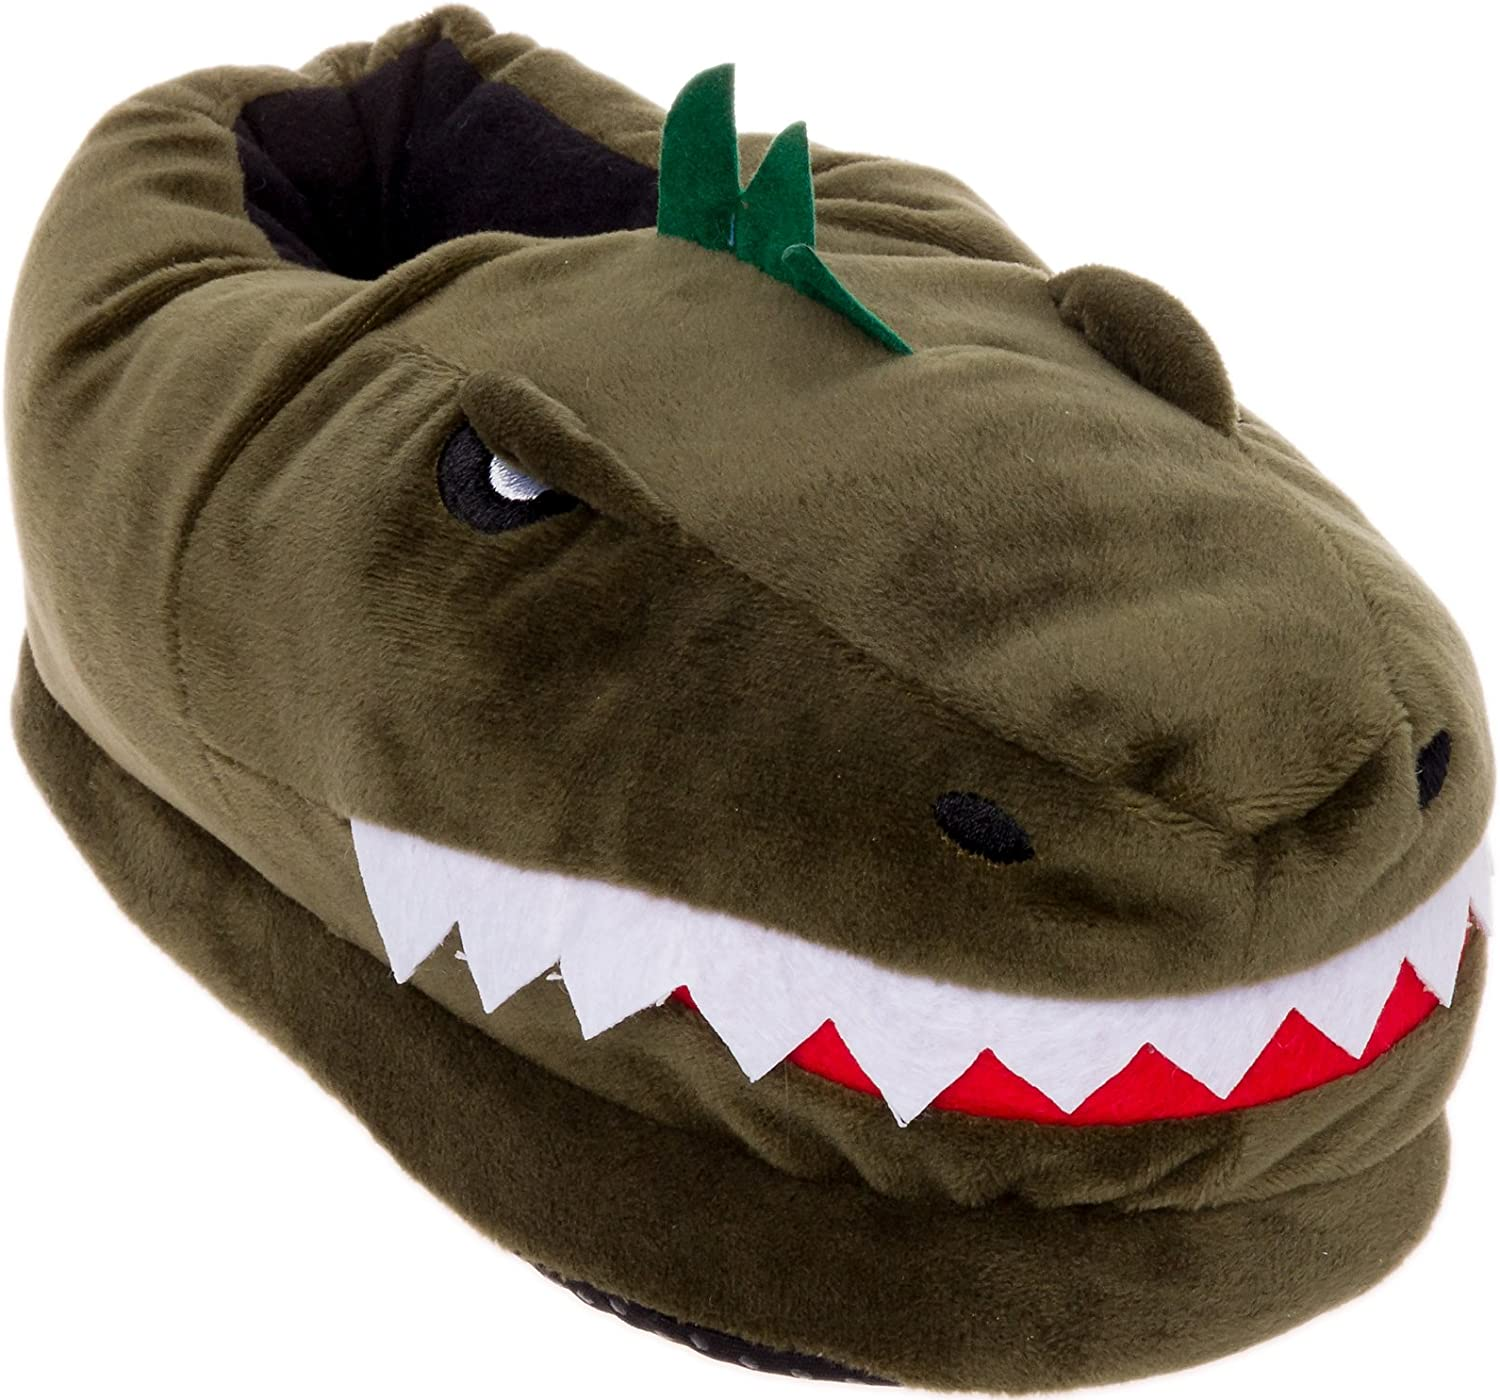 Silver Lilly Dinosaur Slippers - T-Rex Cushion w Plush OFFer Wholesale